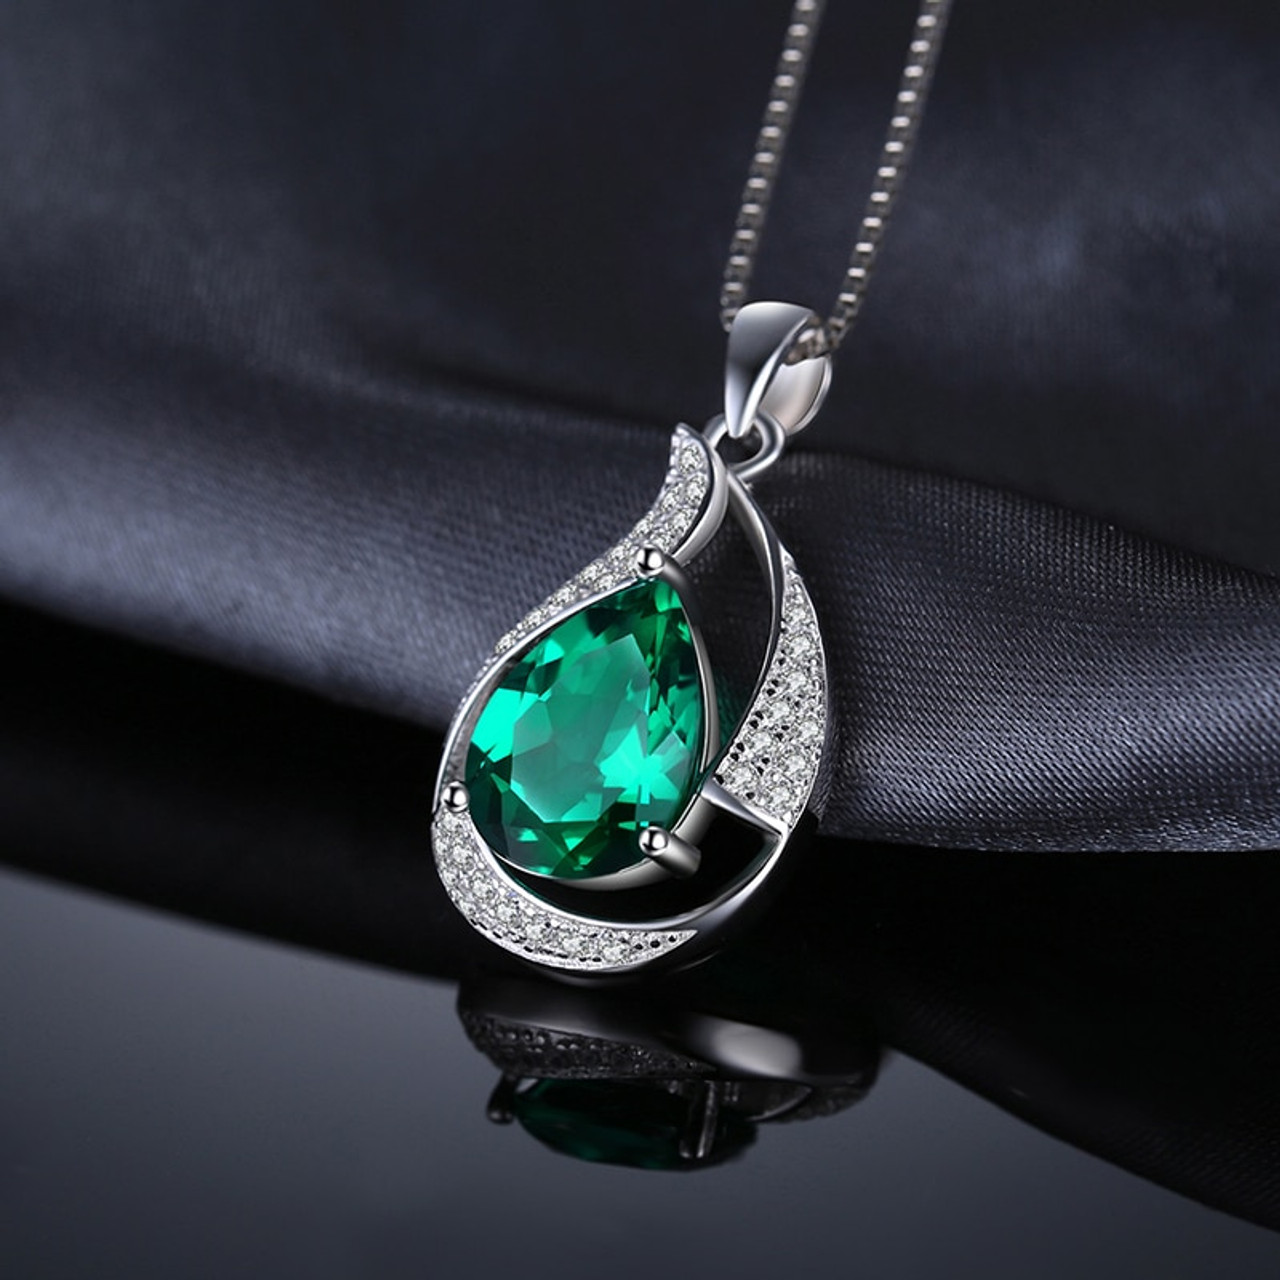 JewelryPalace 2.7ct Created Nano Russian Emerald Pendant 925 Sterling Silver